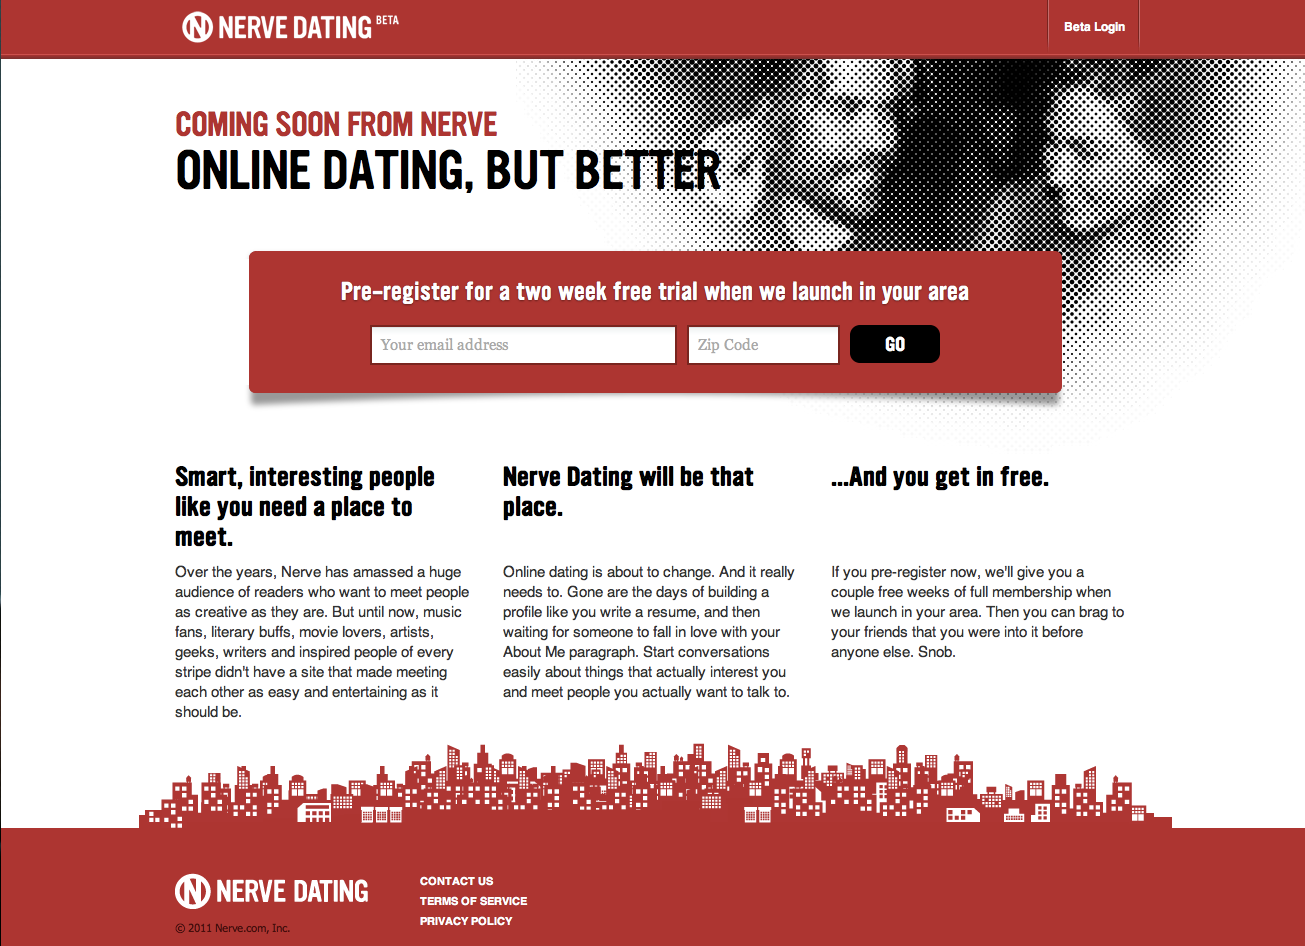 The nerve dating site